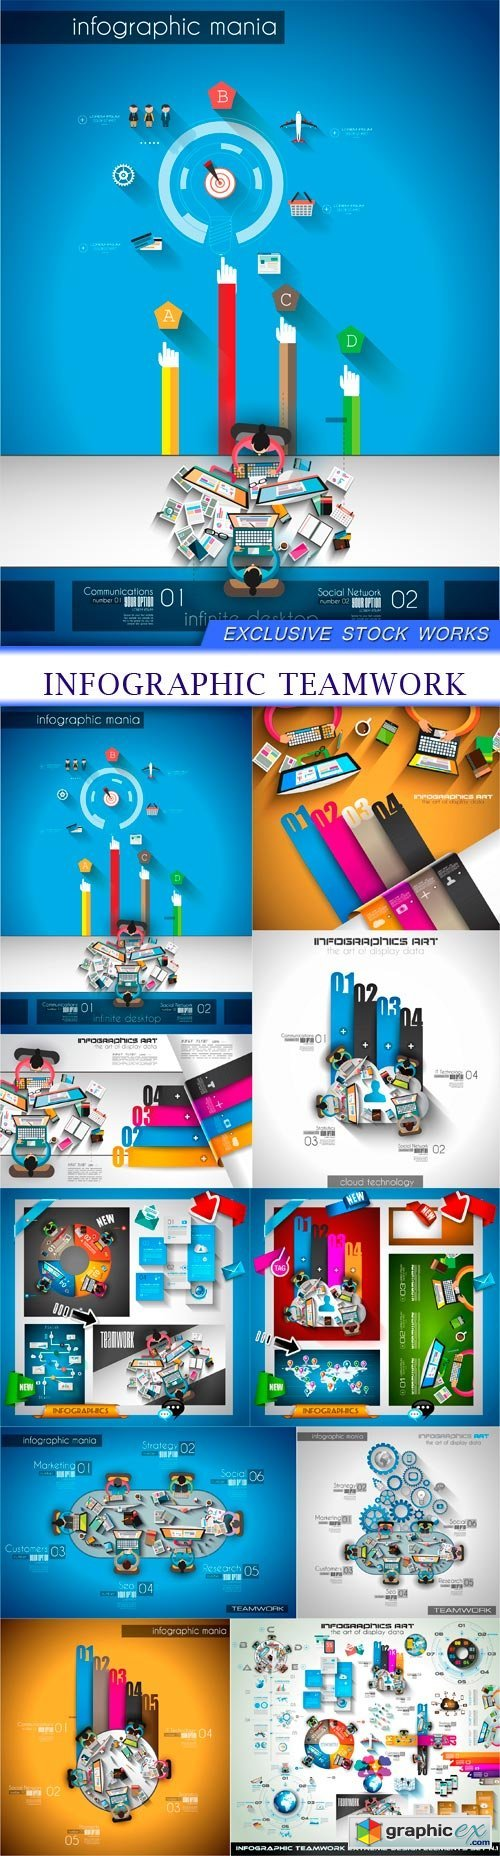 Bussiness and infographic page 32 free download vector stock infographic teamwork 10x eps gumiabroncs Choice Image